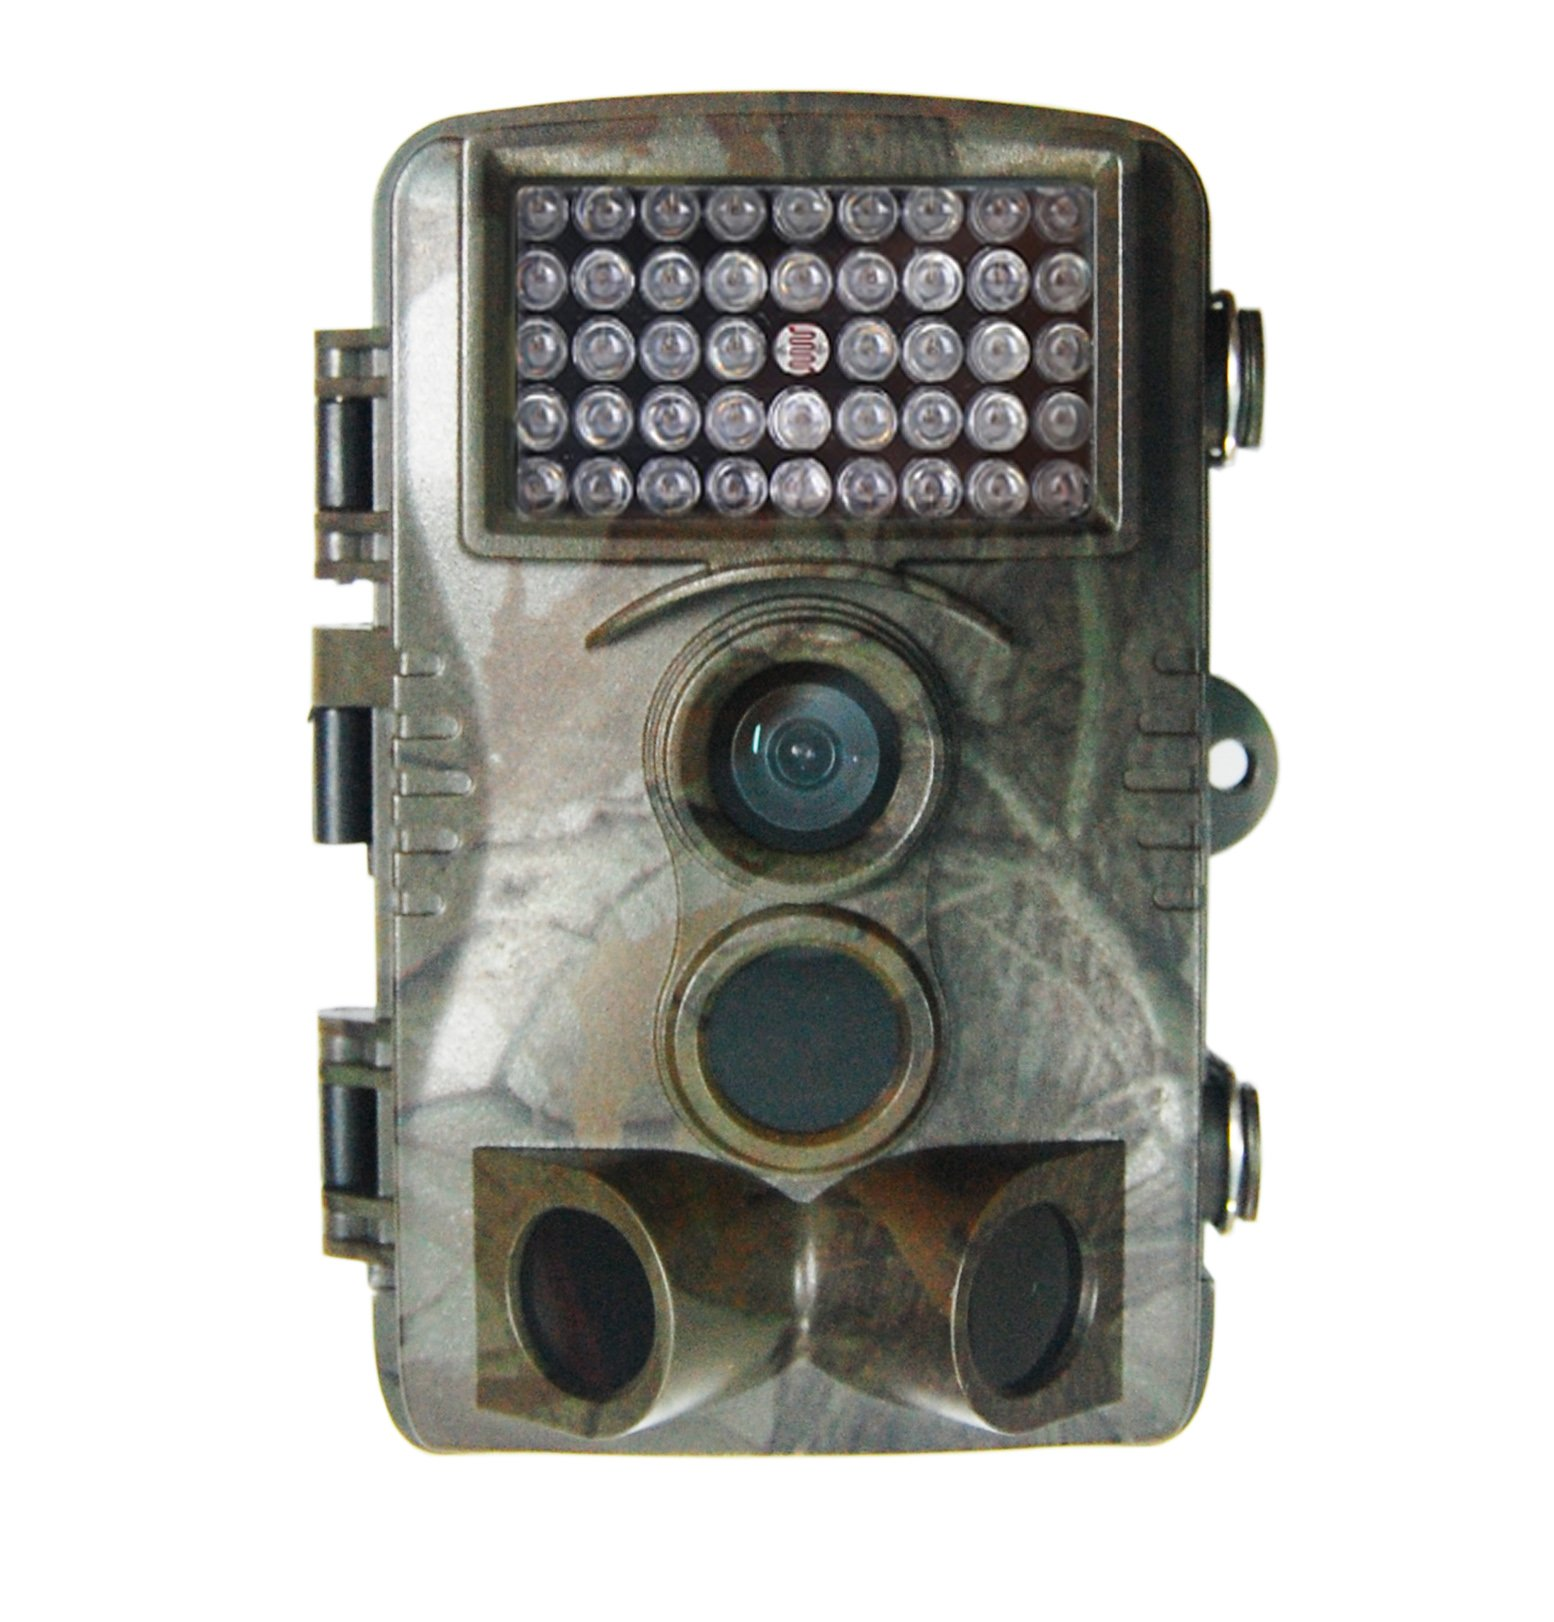 Konetun 2.4 Inch Screen 12 Megapixel (12 MP) 1080P HD 120 degree Wide Angle IP54 Waterproof Hunting Wildlife Trail Game Camera Surveillance Camera with 42 Pcs IR LEDs for Night Vision